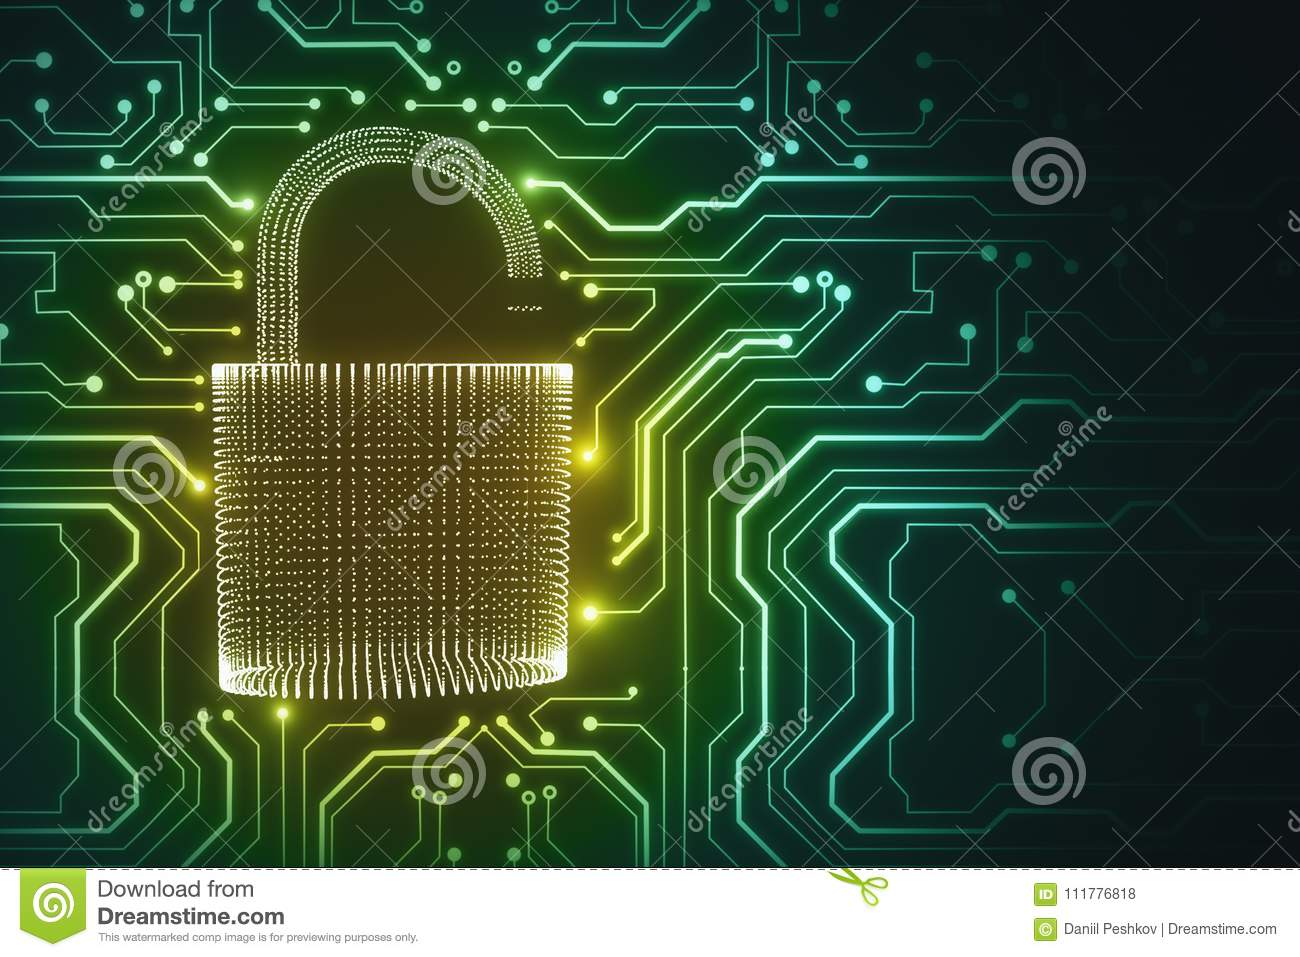 Safety and cyberspace concept